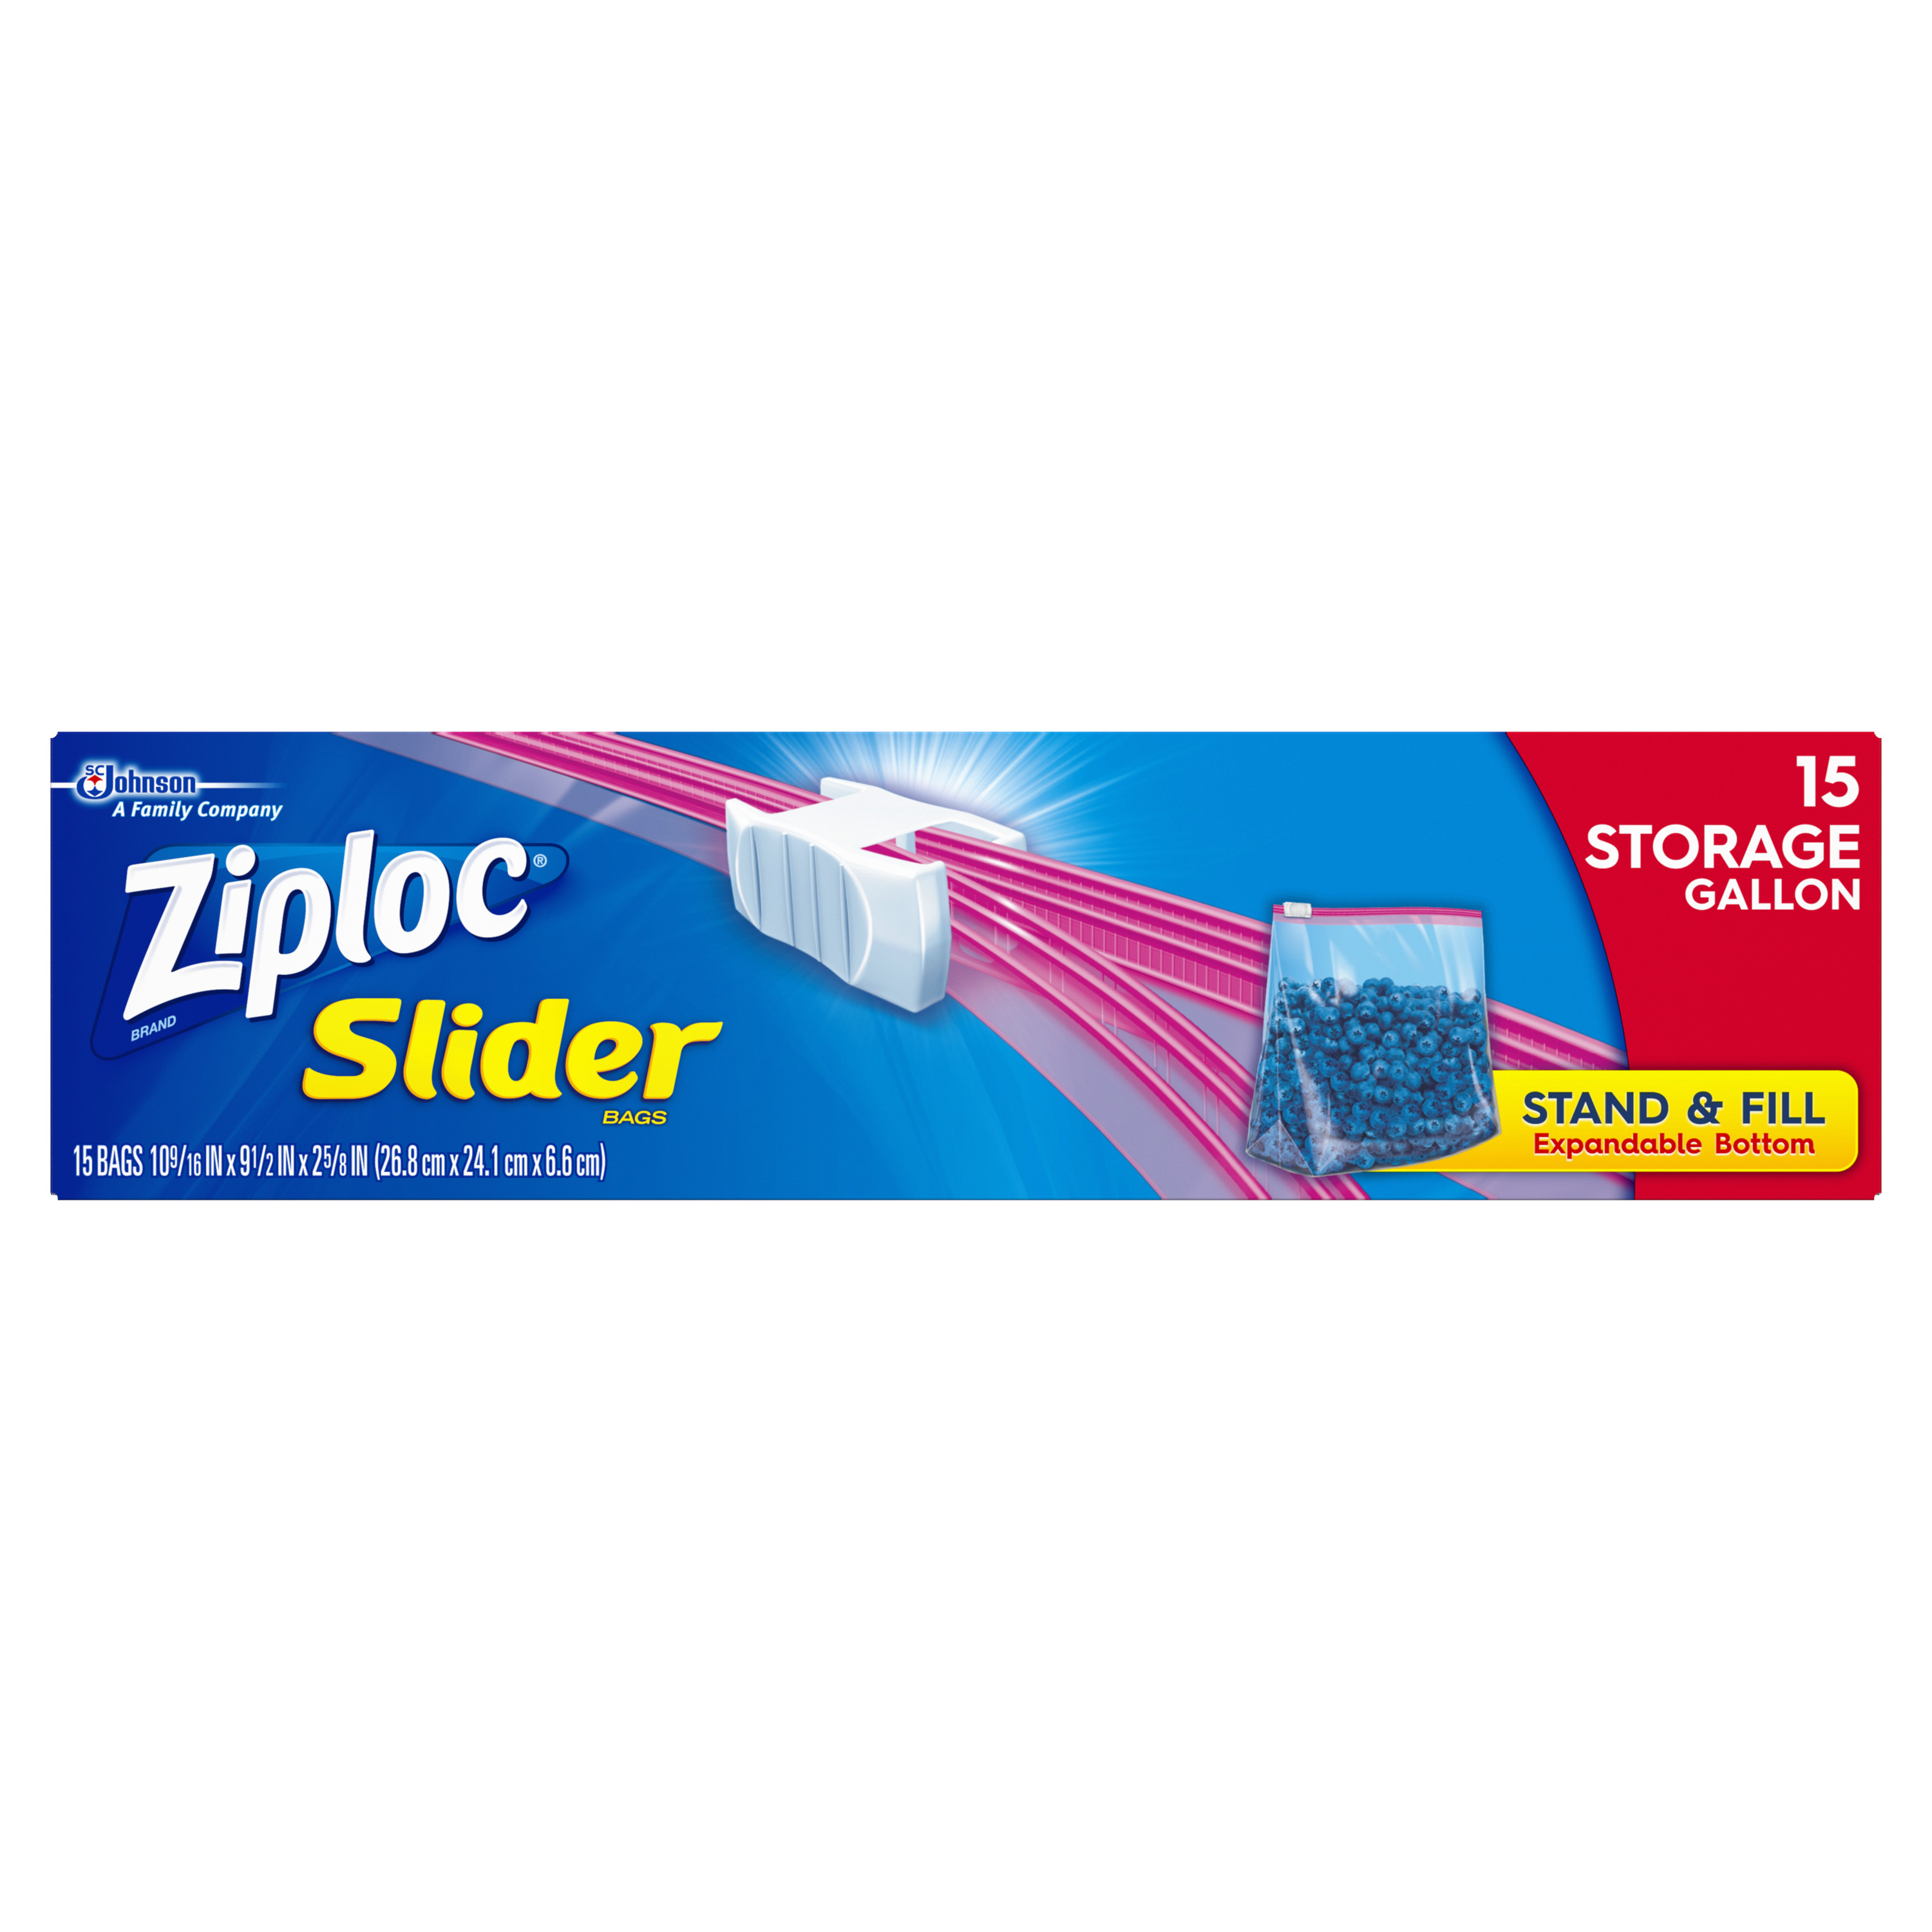 Ziploc Slider Storage Bags Gallon 15 count